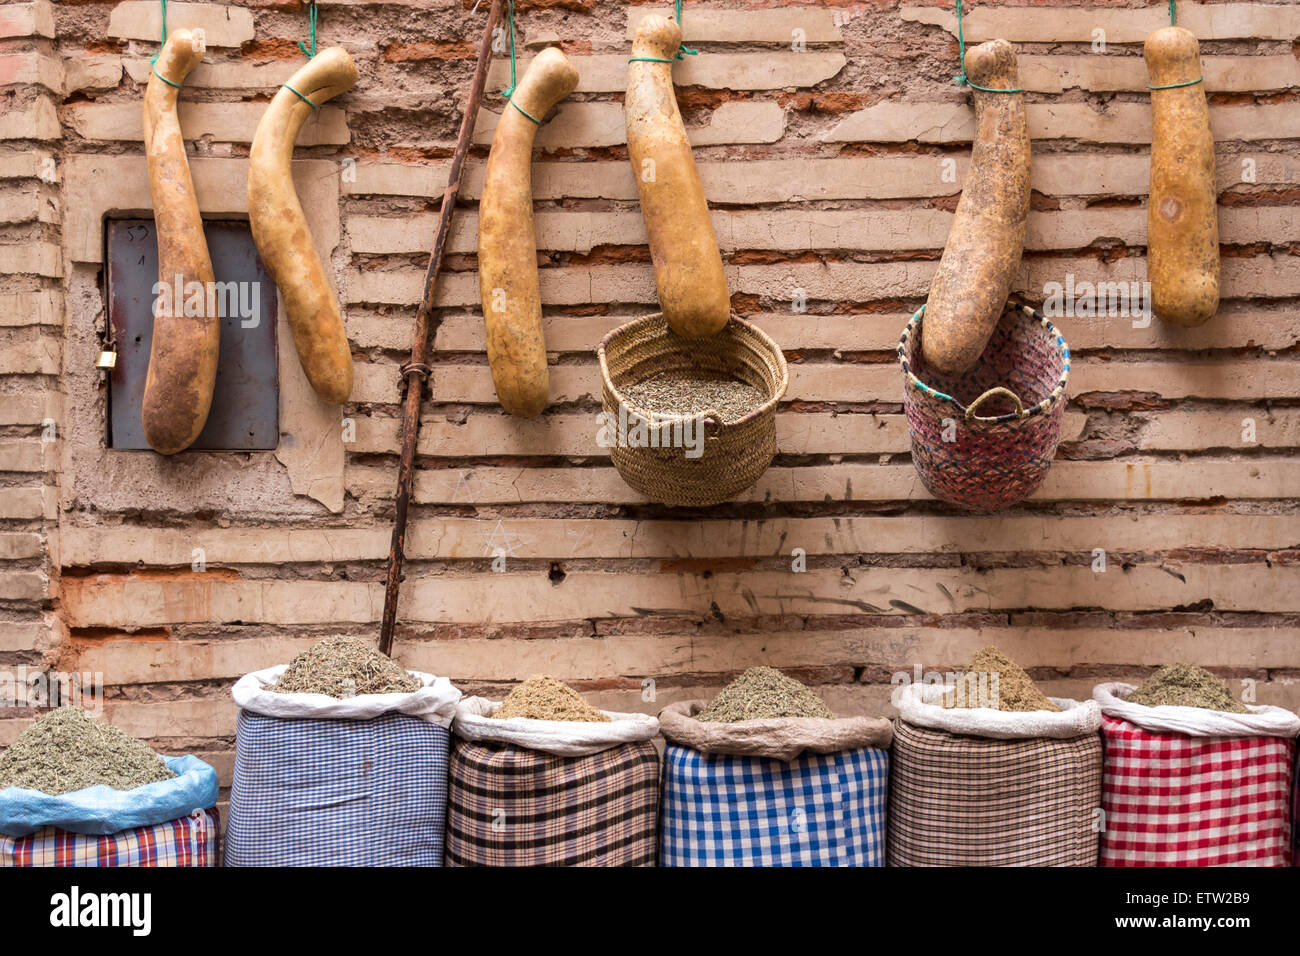 Morocco, Marrakesh, row of calabashes and sacks with spices in front of facade - Stock Image